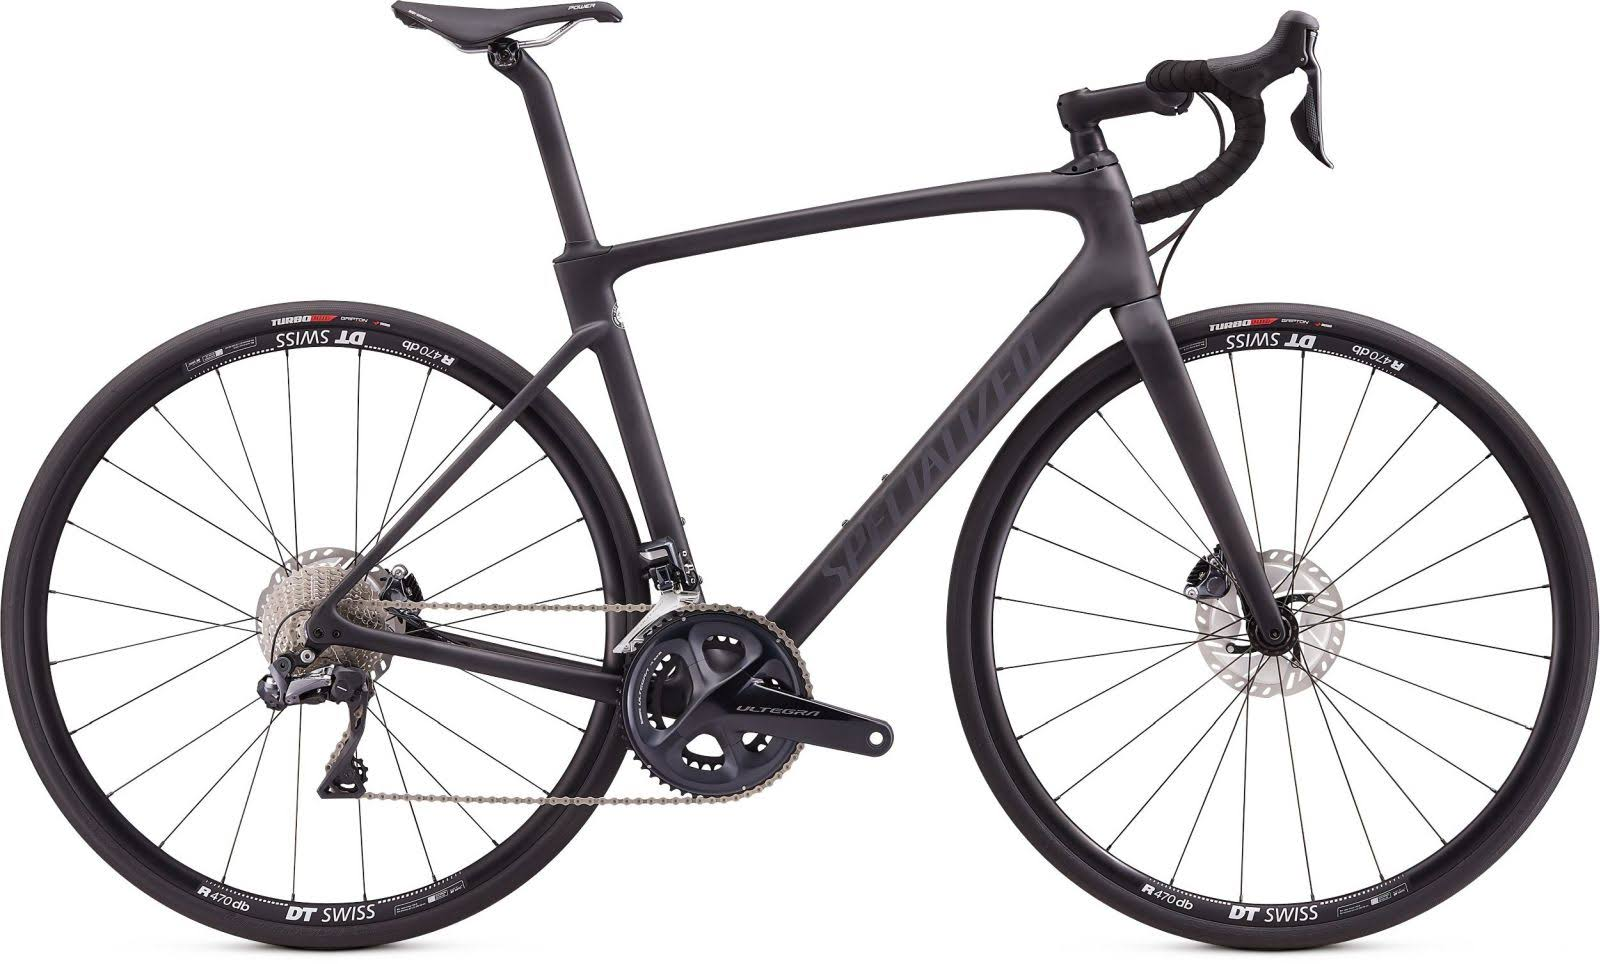 Specialized Roubaix Comp Ultegra Di2 Road Bike 2020 - Carbon/Black